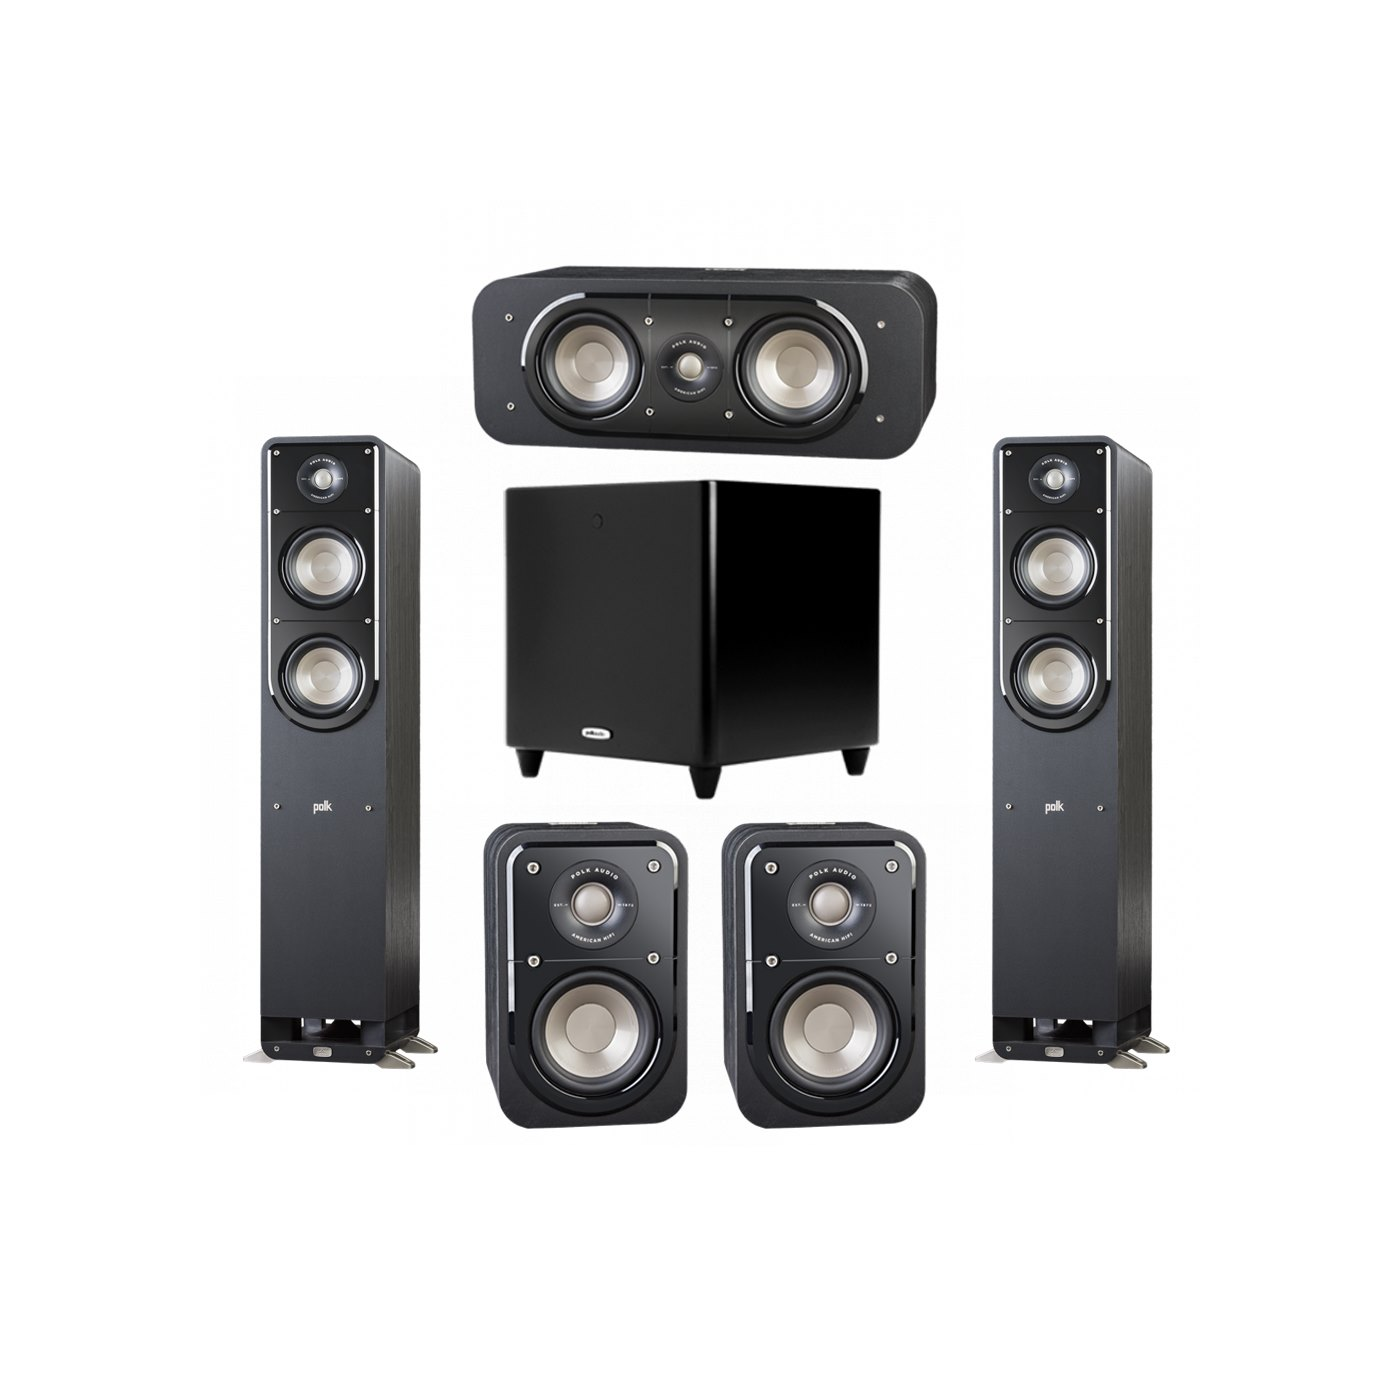 Polk Audio Signature 5.1 System with 2 S50 Tower Speaker, 1 Polk S30 Center Speaker, 2 Polk S10 Surround Speaker, 1 Polk DSW PRO 550 wi Subwoofer